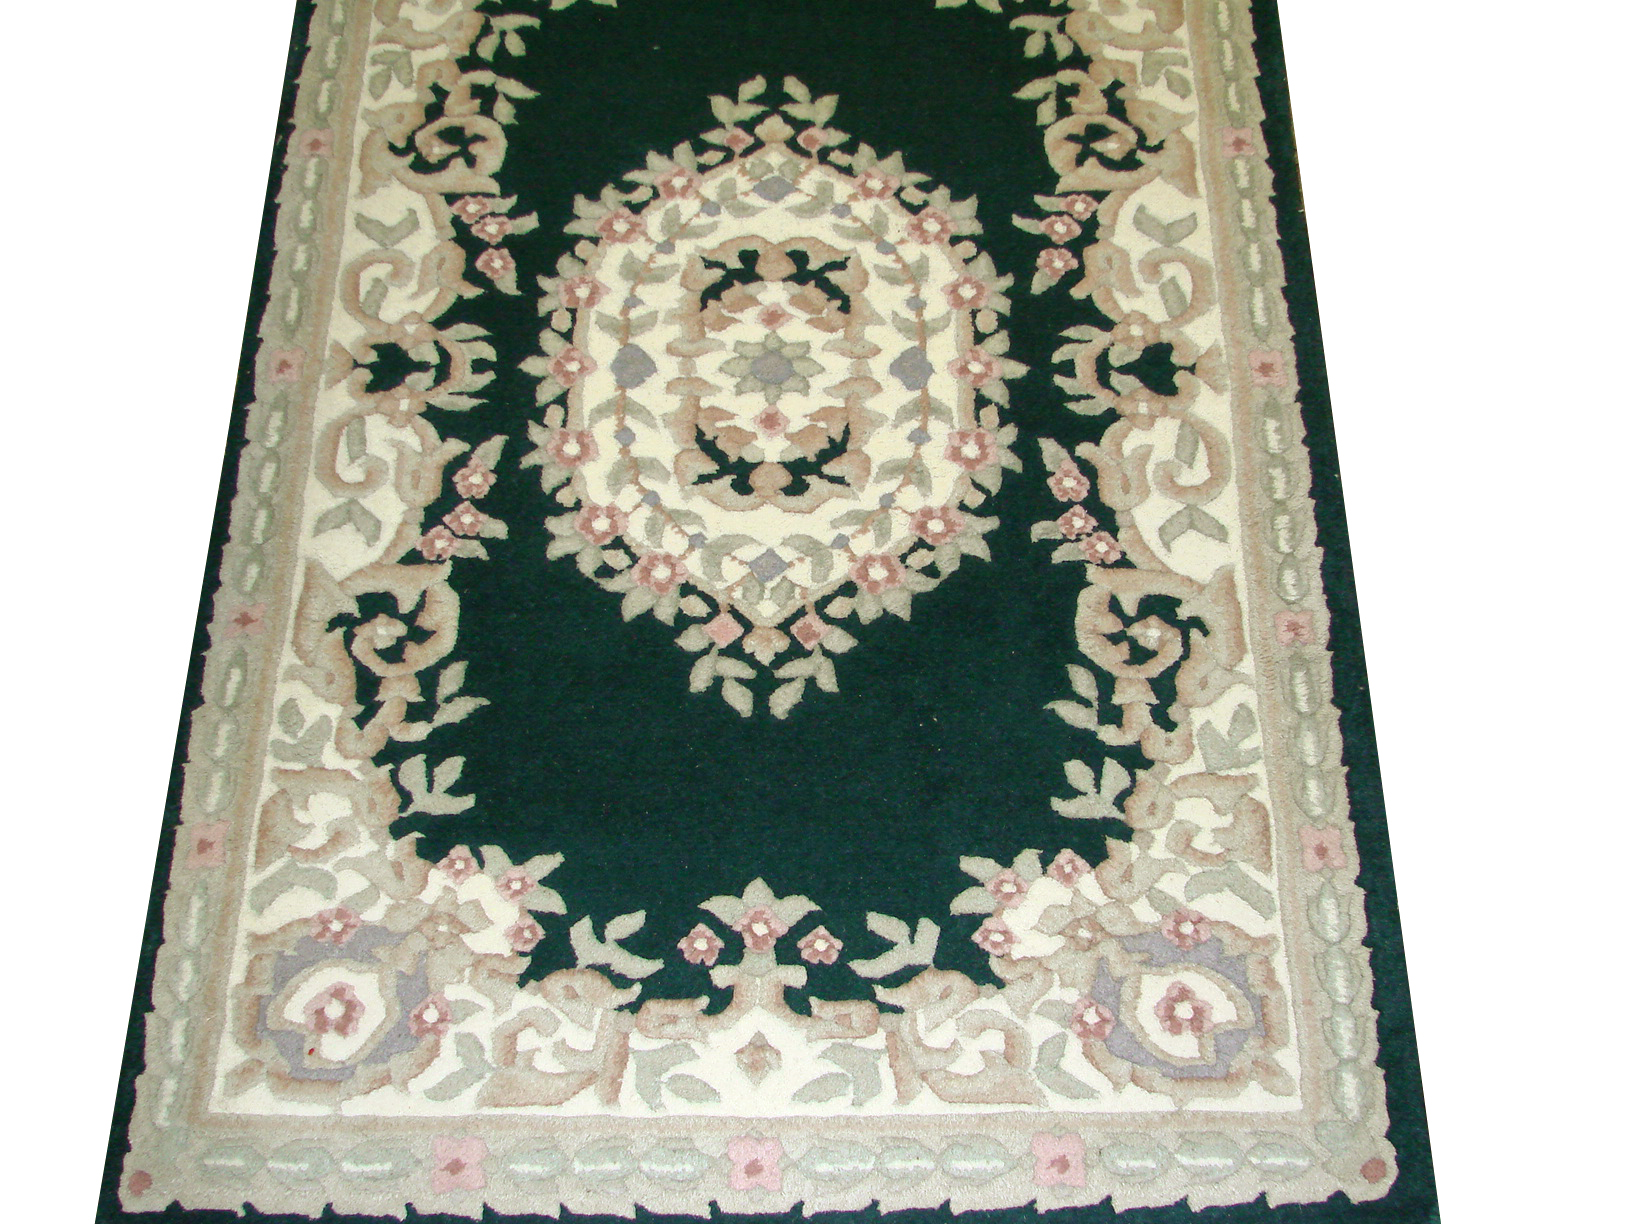 3x5 Traditional Hand Knotted Wool Area Rug - MR1779